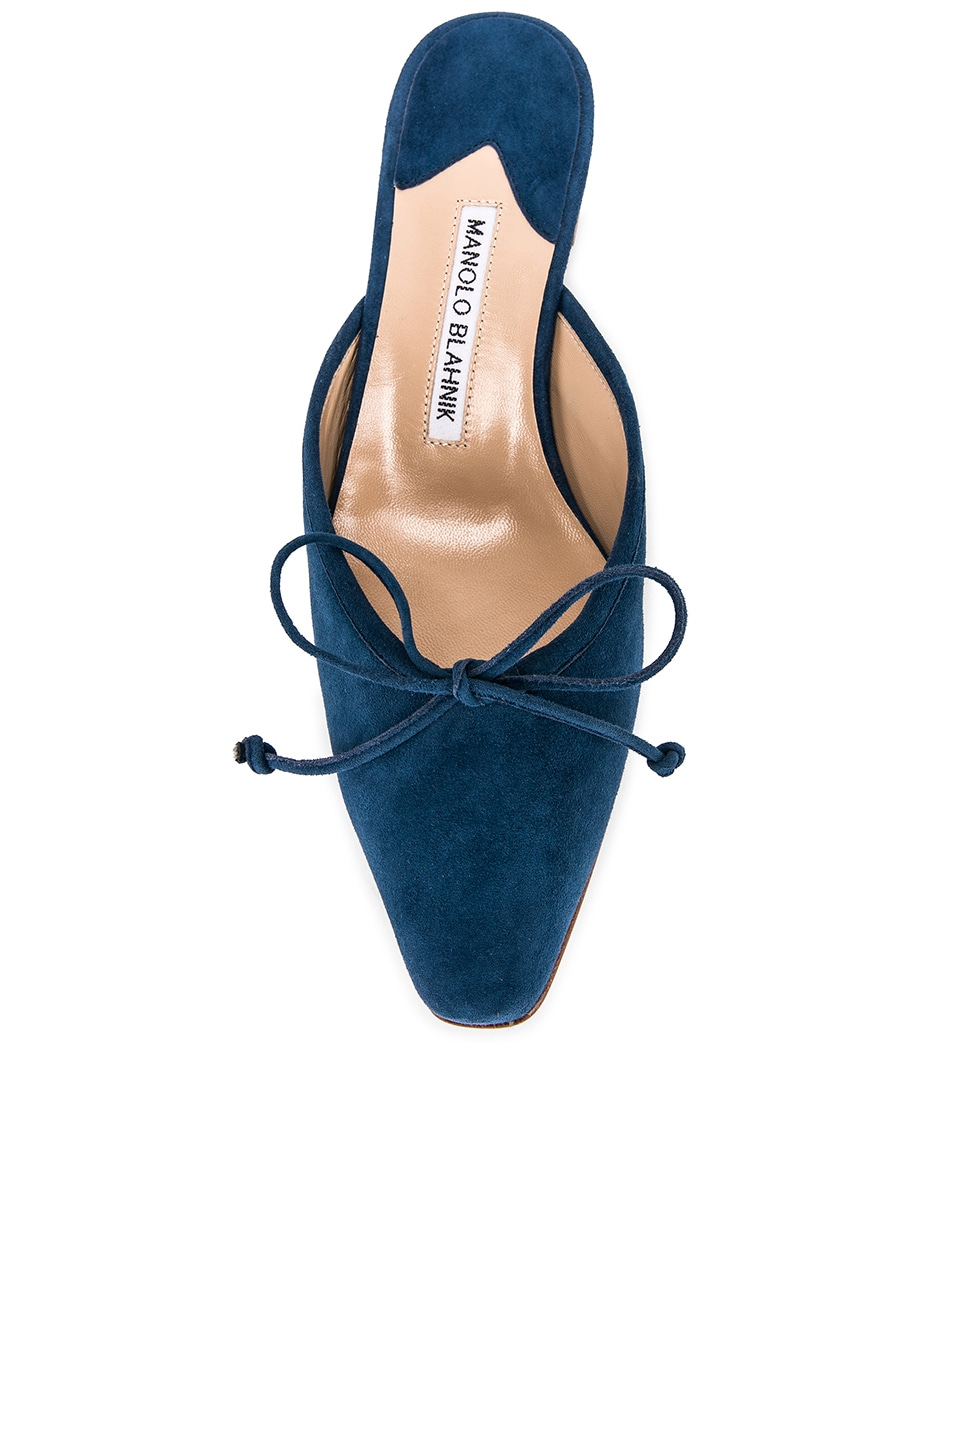 Image 4 of Manolo Blahnik Ballerimu Slide in Blue Suede